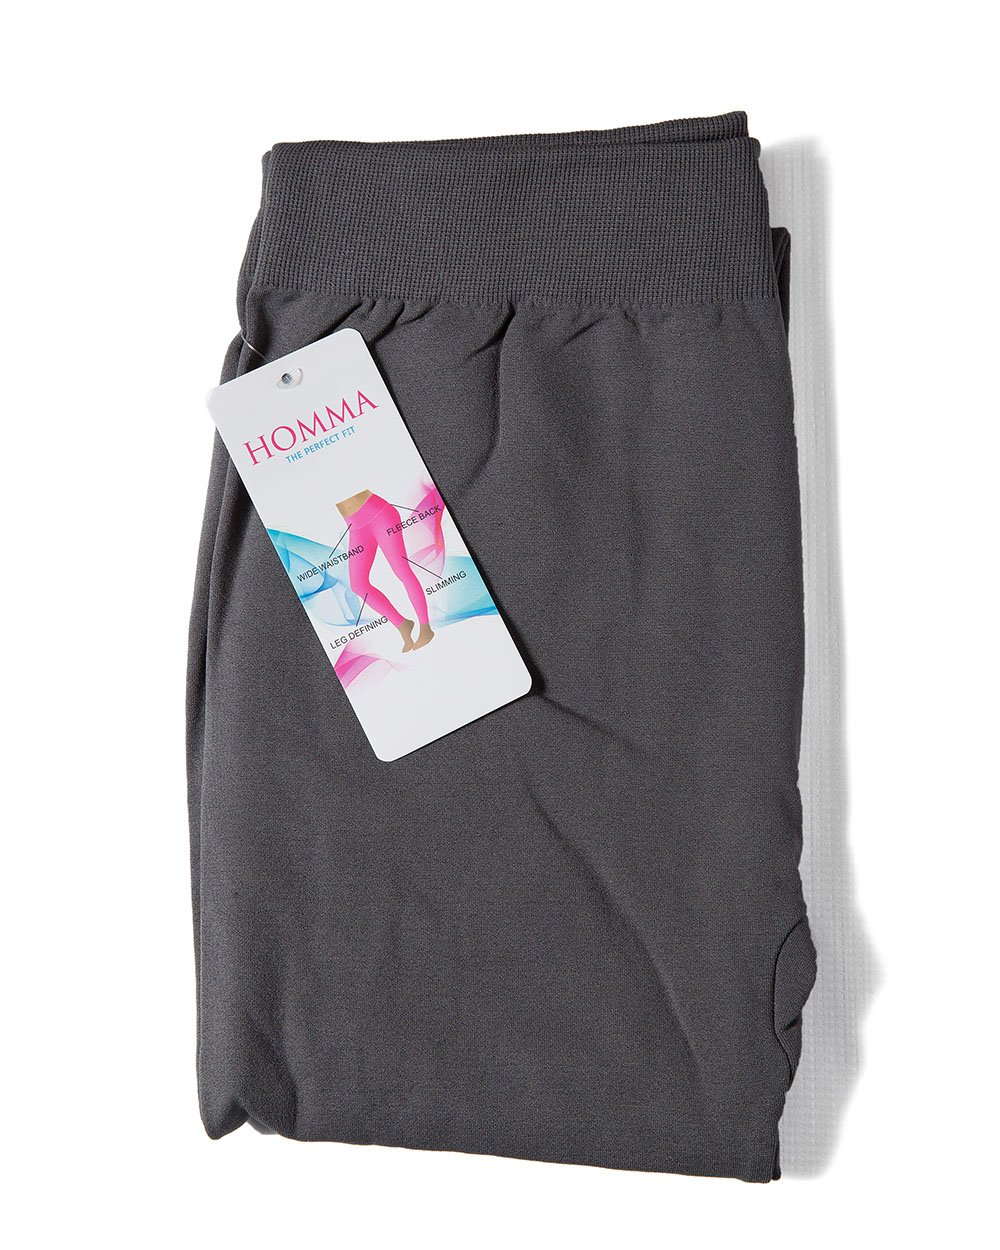 3-Pack Fleece Lined Thick Brushed Leggings by Homma (S/M/L, BLACK/NAVY/GREY) by Homma (Image #6)